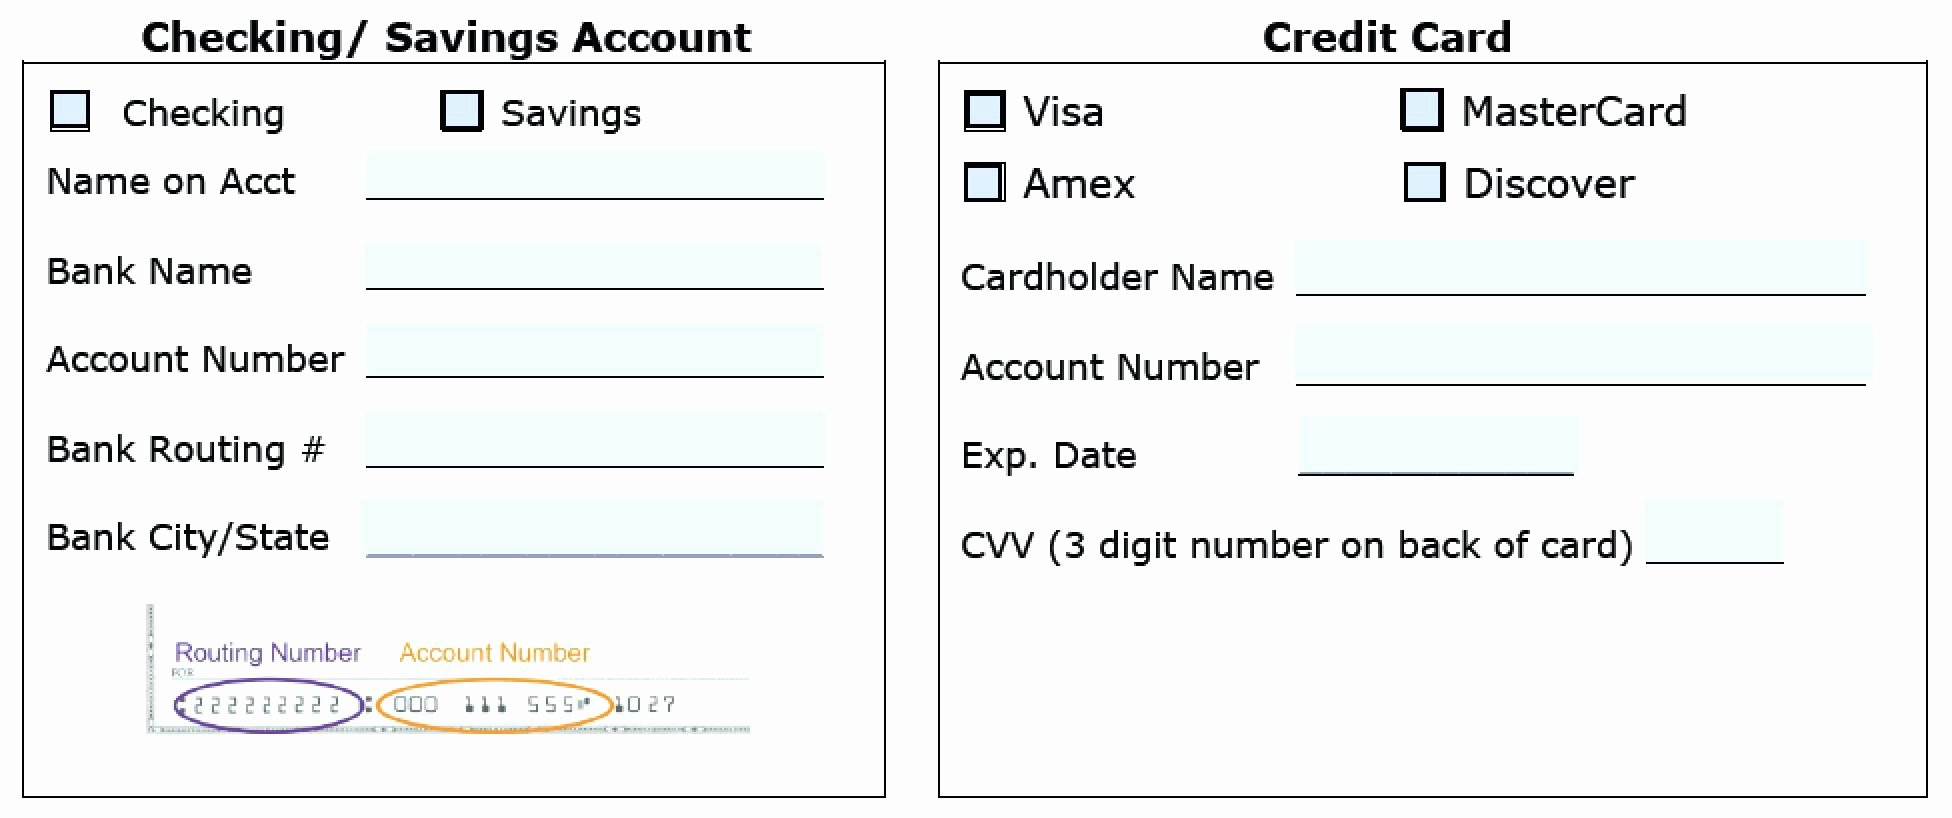 Template Credit Card Processing form Template